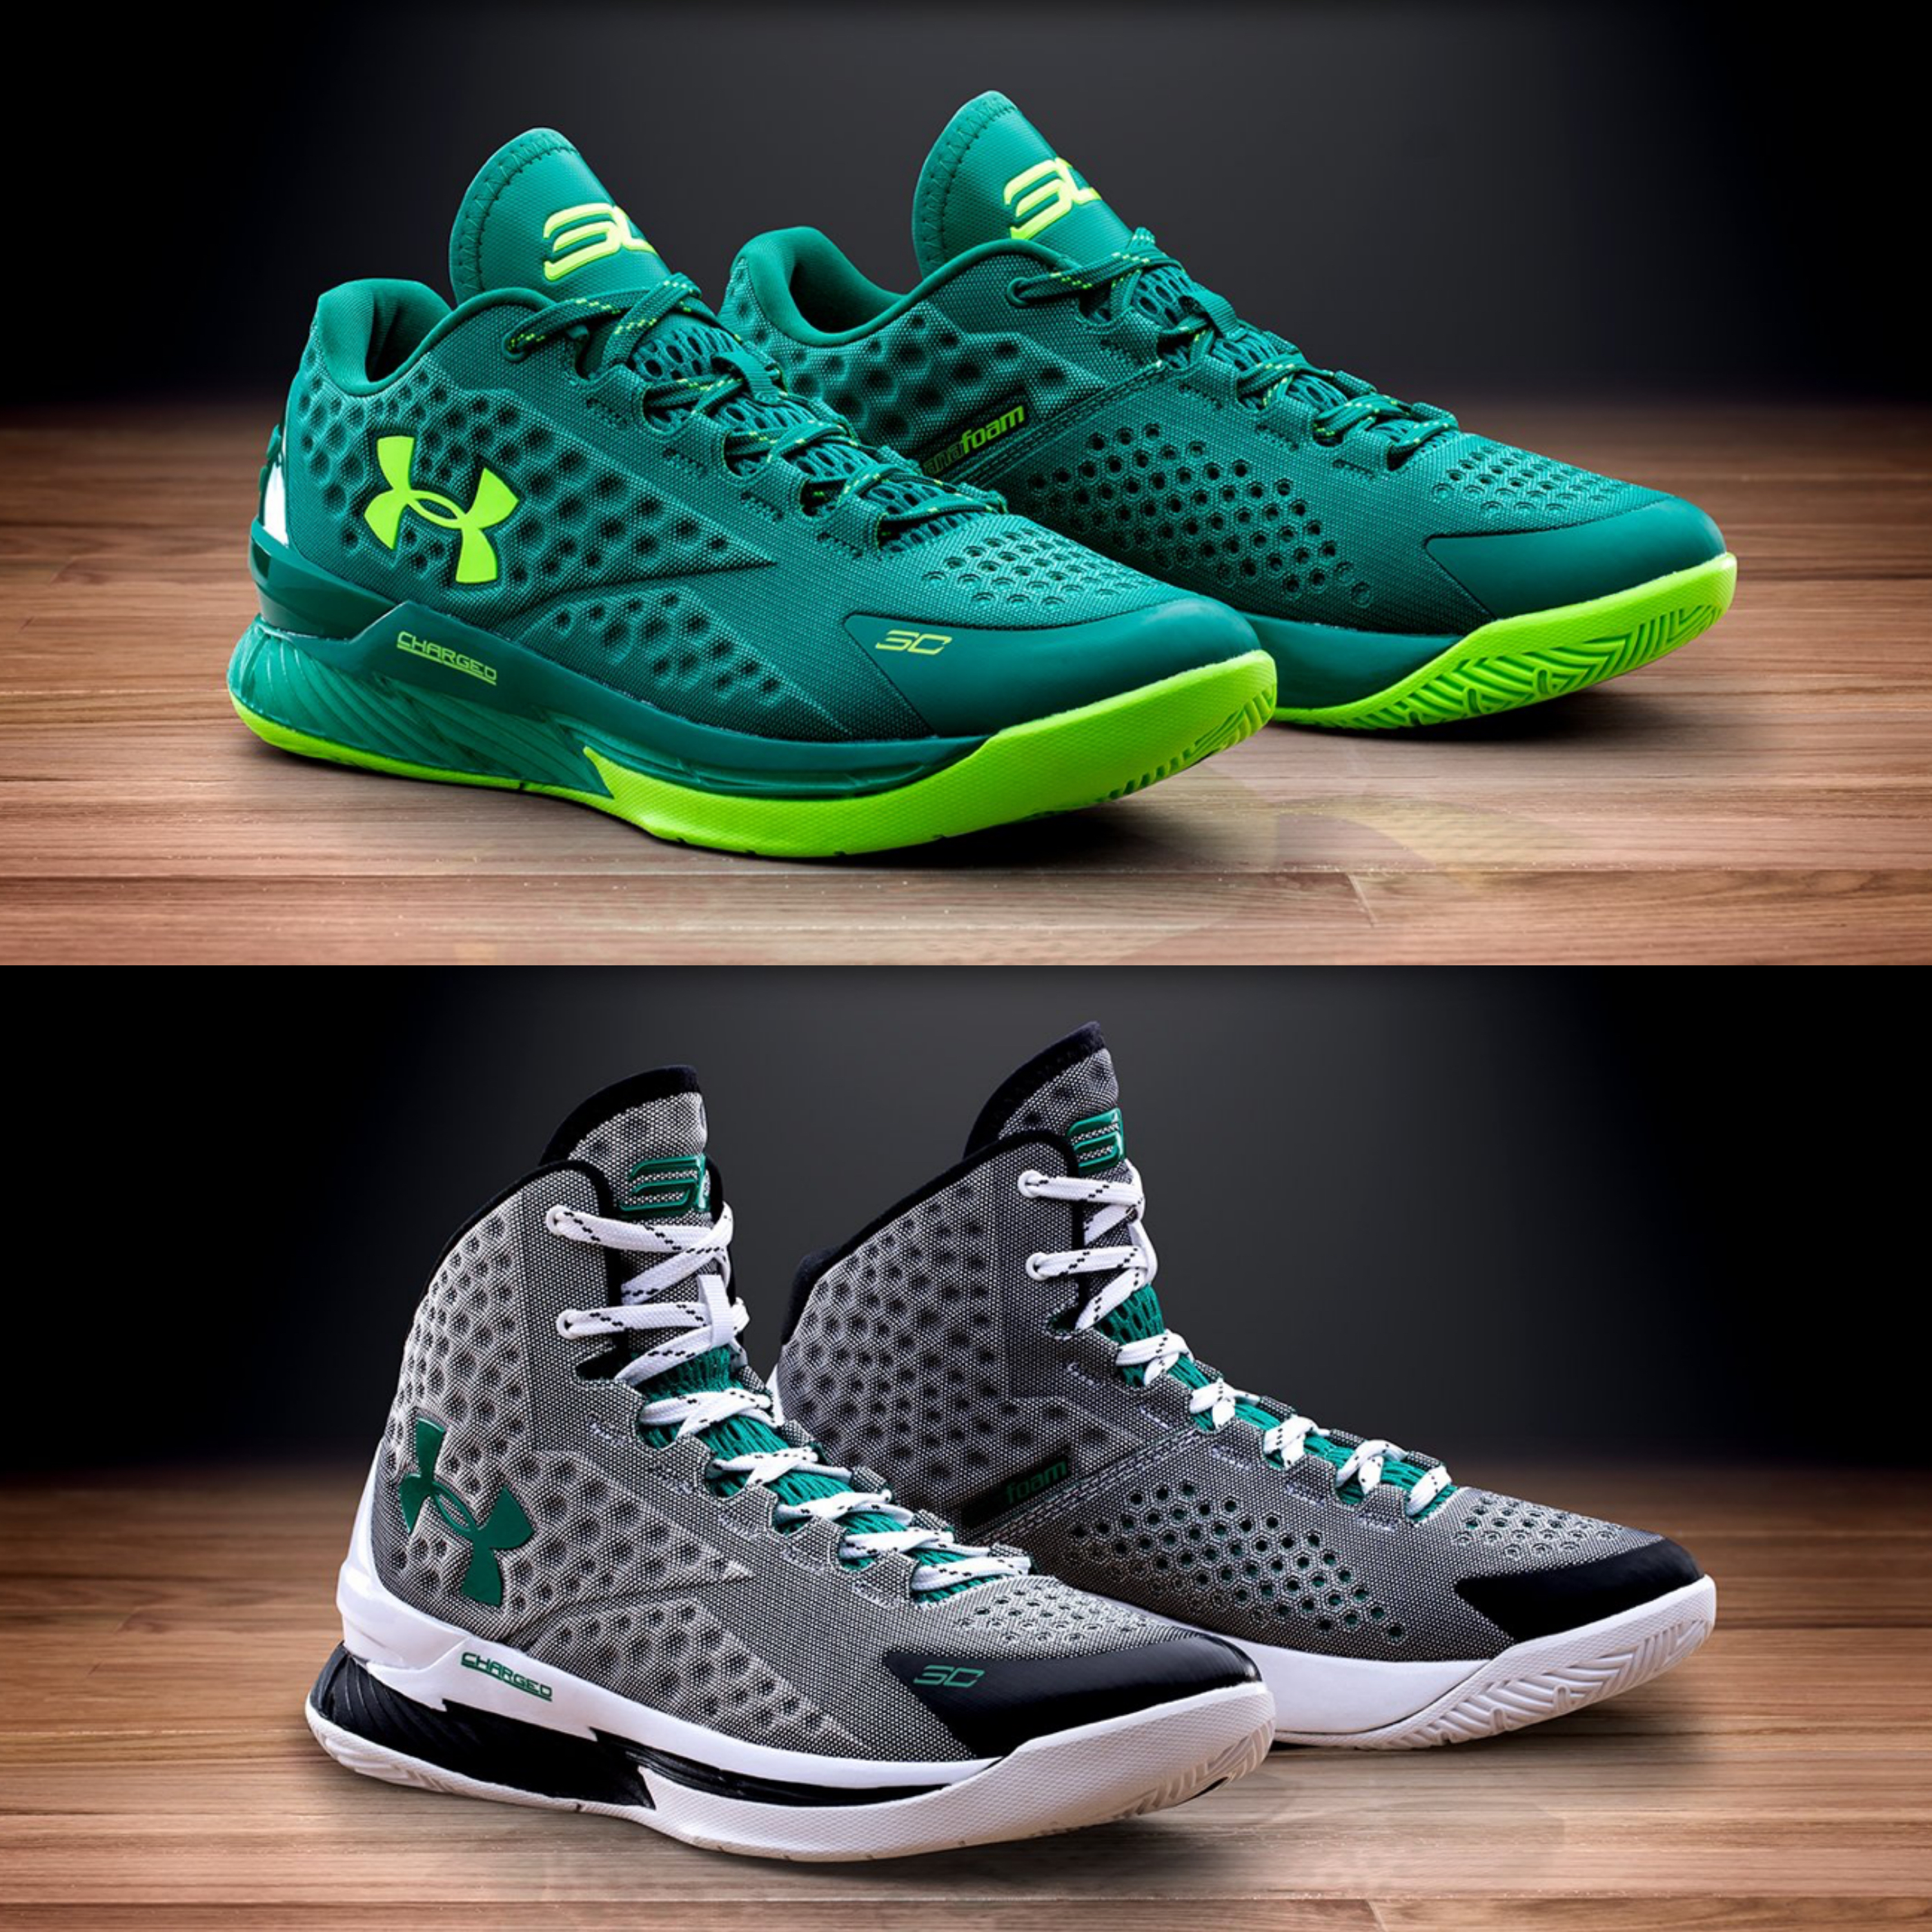 Under Armour Curry One 'Golf' Pack - Low and High ...